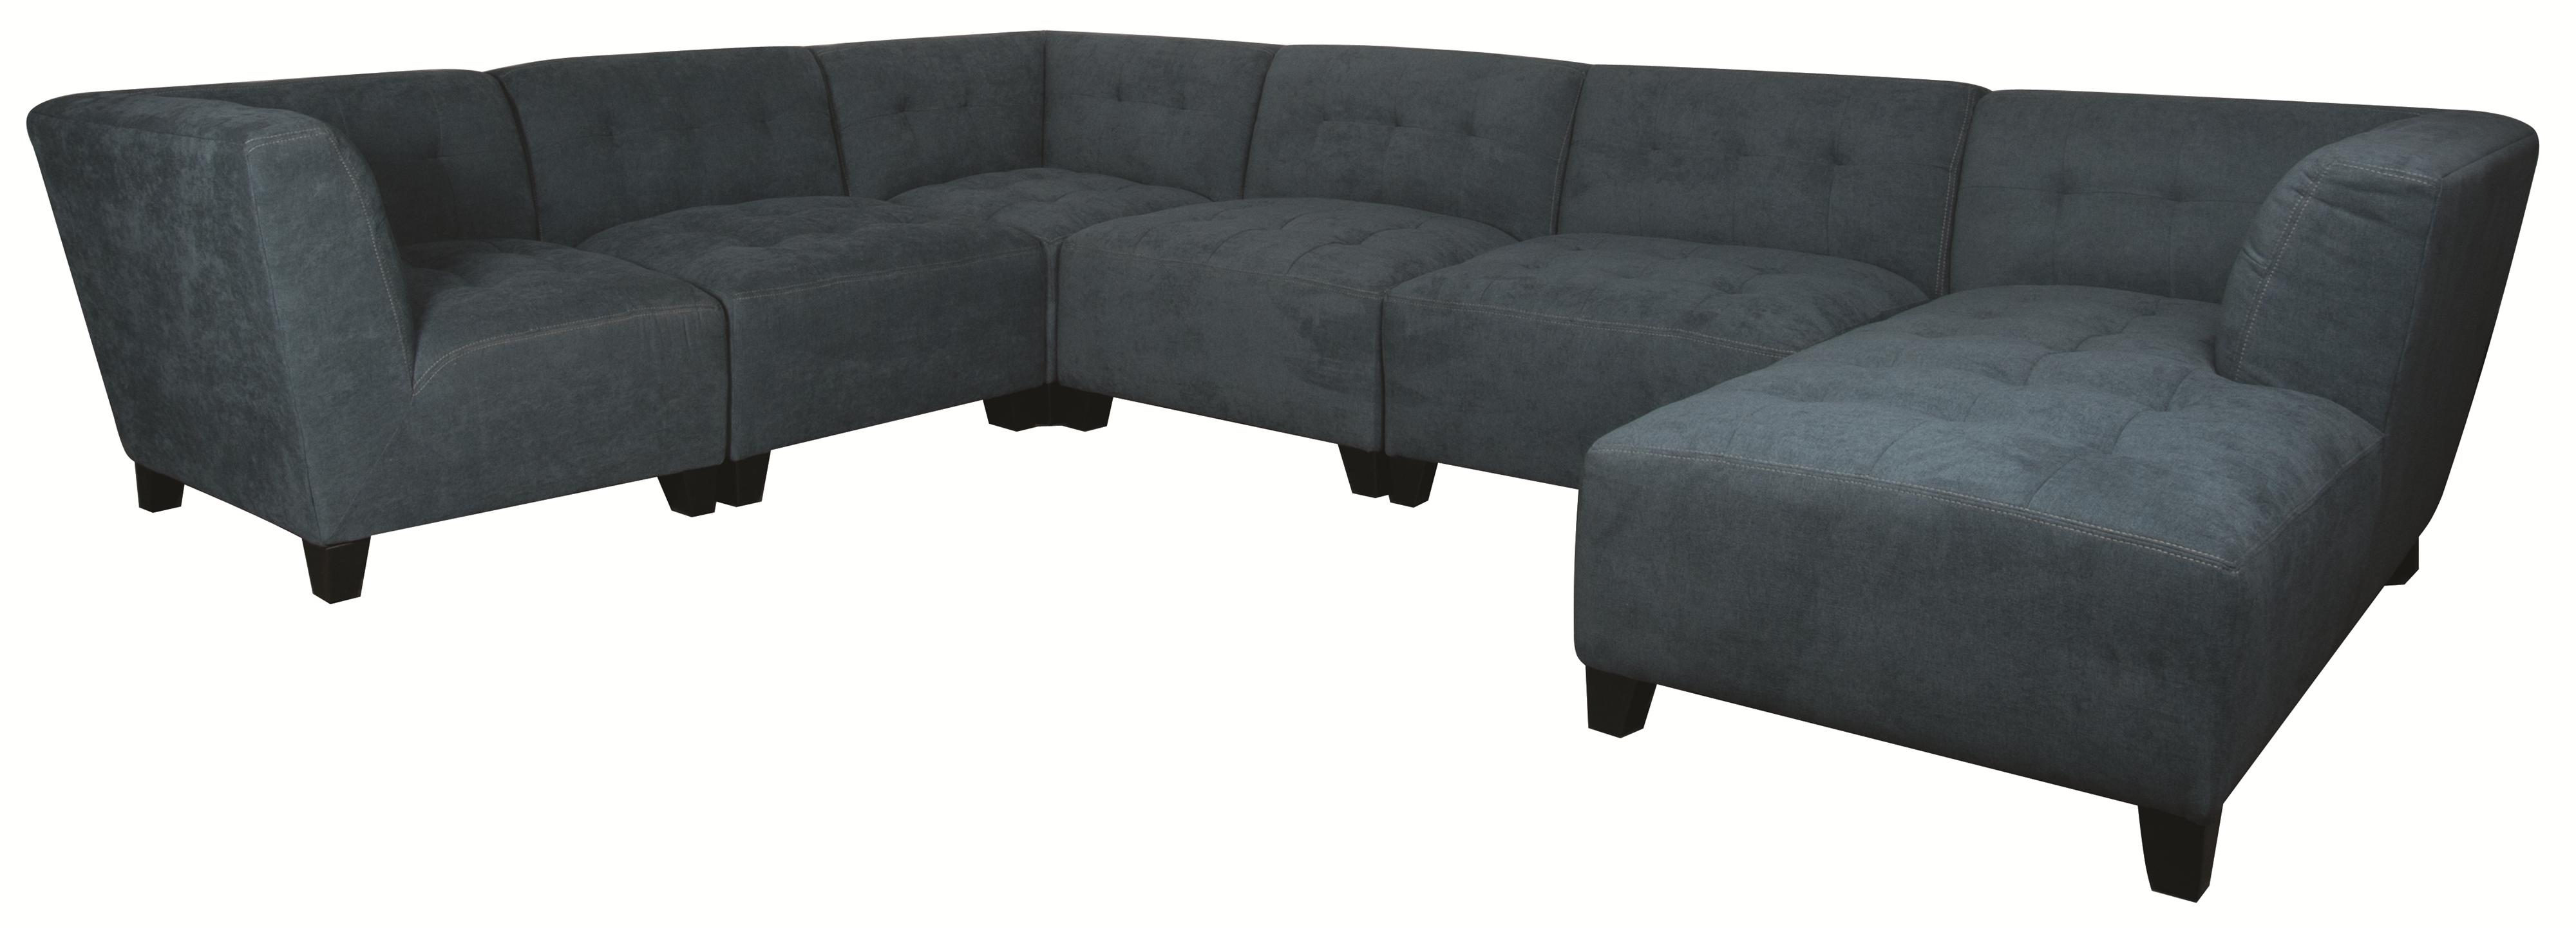 Morris Home Furnishings Emerson Emerson 6-Piece Sectional - Item Number: 148817820